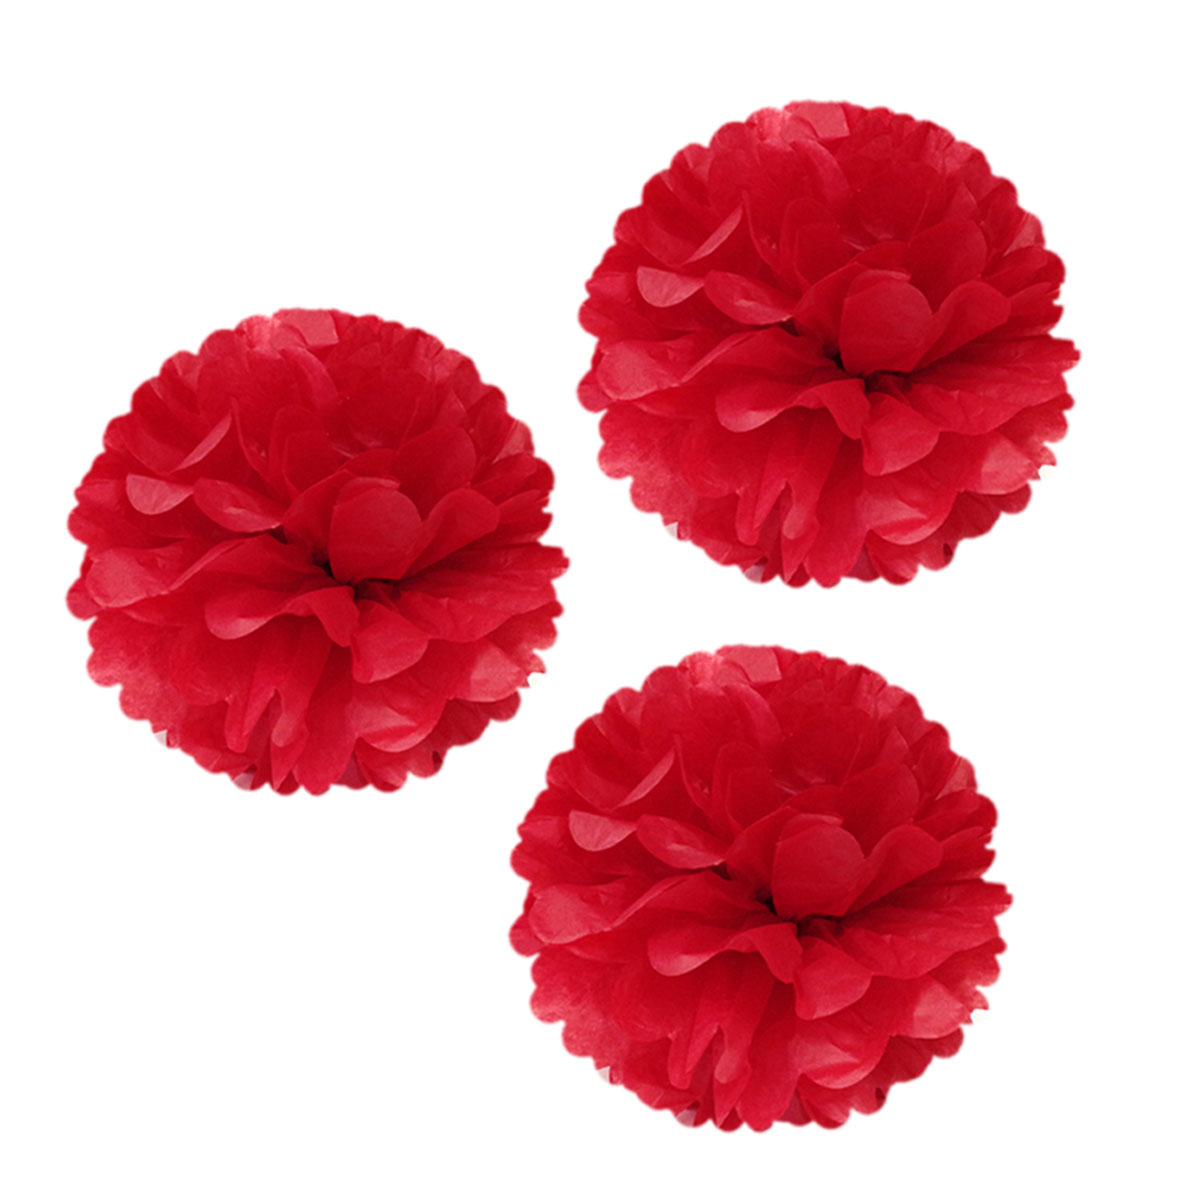 "Wrapables® 12"" Set of 3 Tissue Pom Poms Party Decorations for Weddings, Birthday Parties Baby Showers and Nursery Décor, Red"